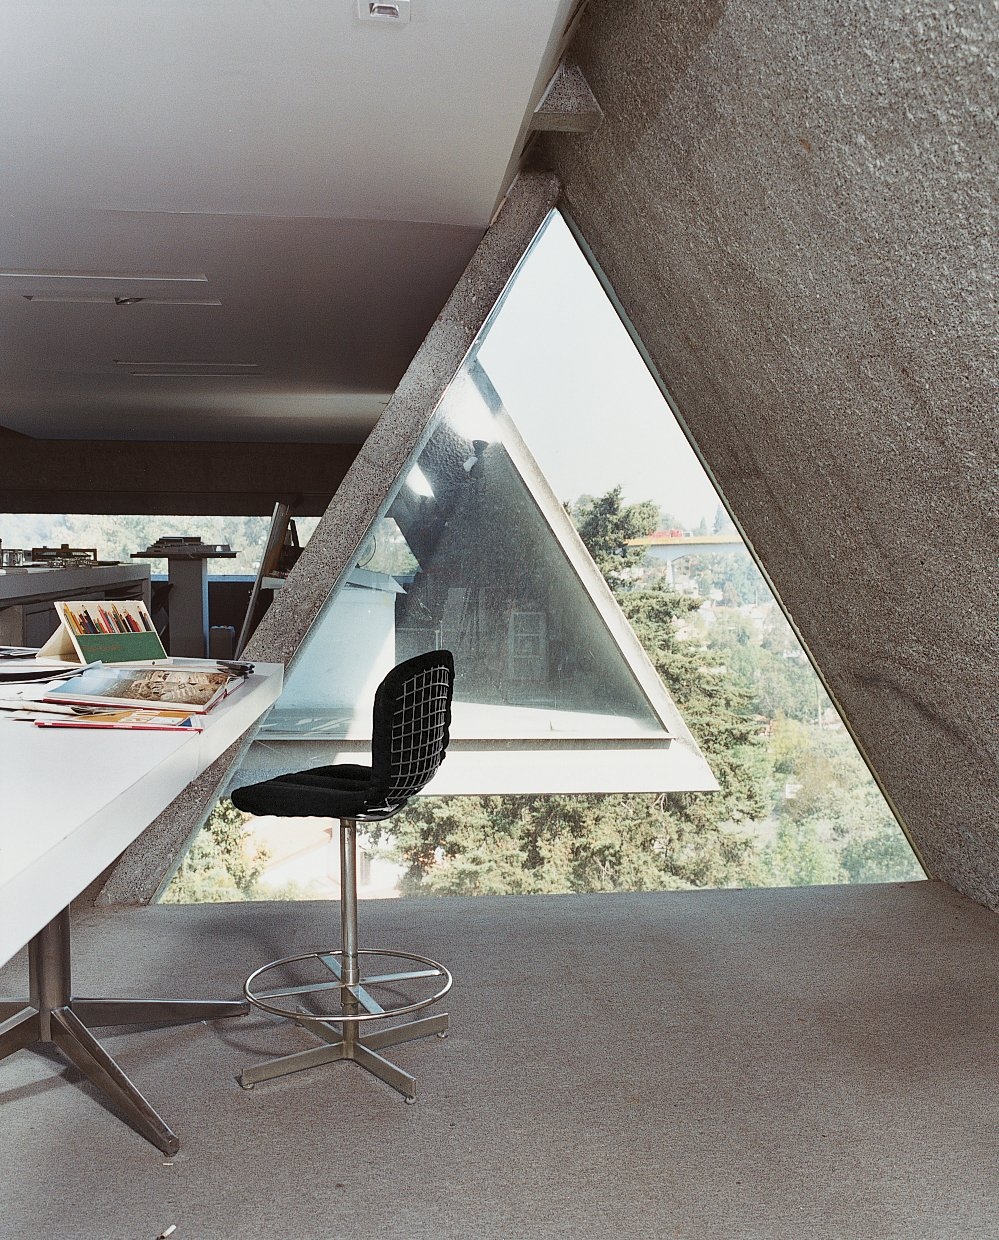 Office, Chair, Desk, and Concrete Floor Agustín Hernandez's home office.  Vestaboard, Inc.'s Favorites from Hecho in Mexico City